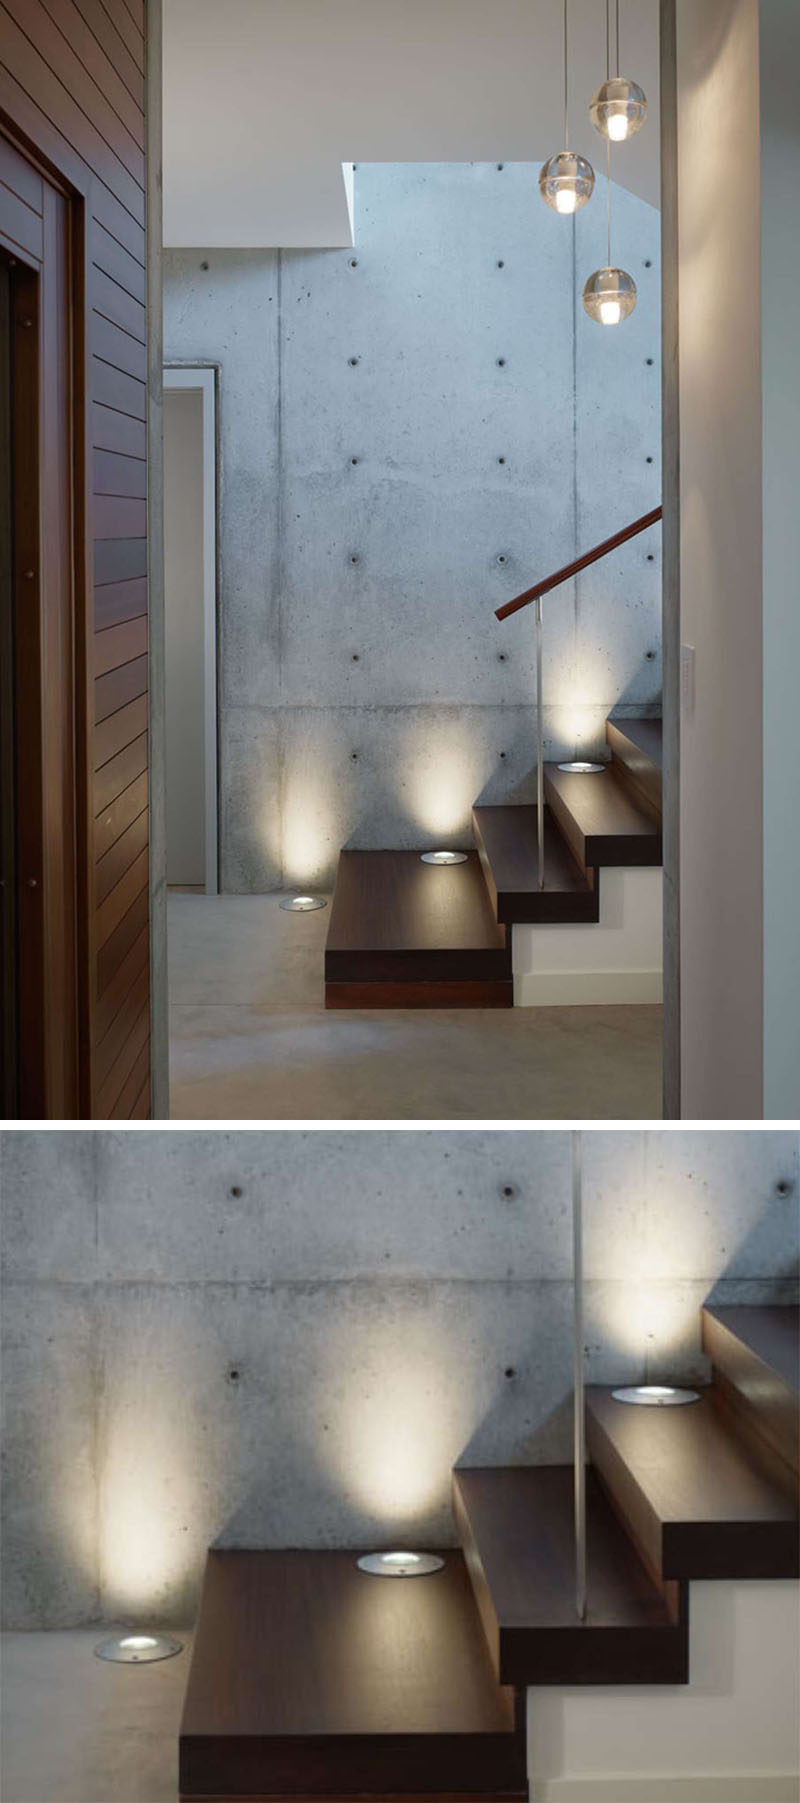 7 Interiors That Use Dramatic Uplighting To Brighten A Space // Embedded  lights guide people